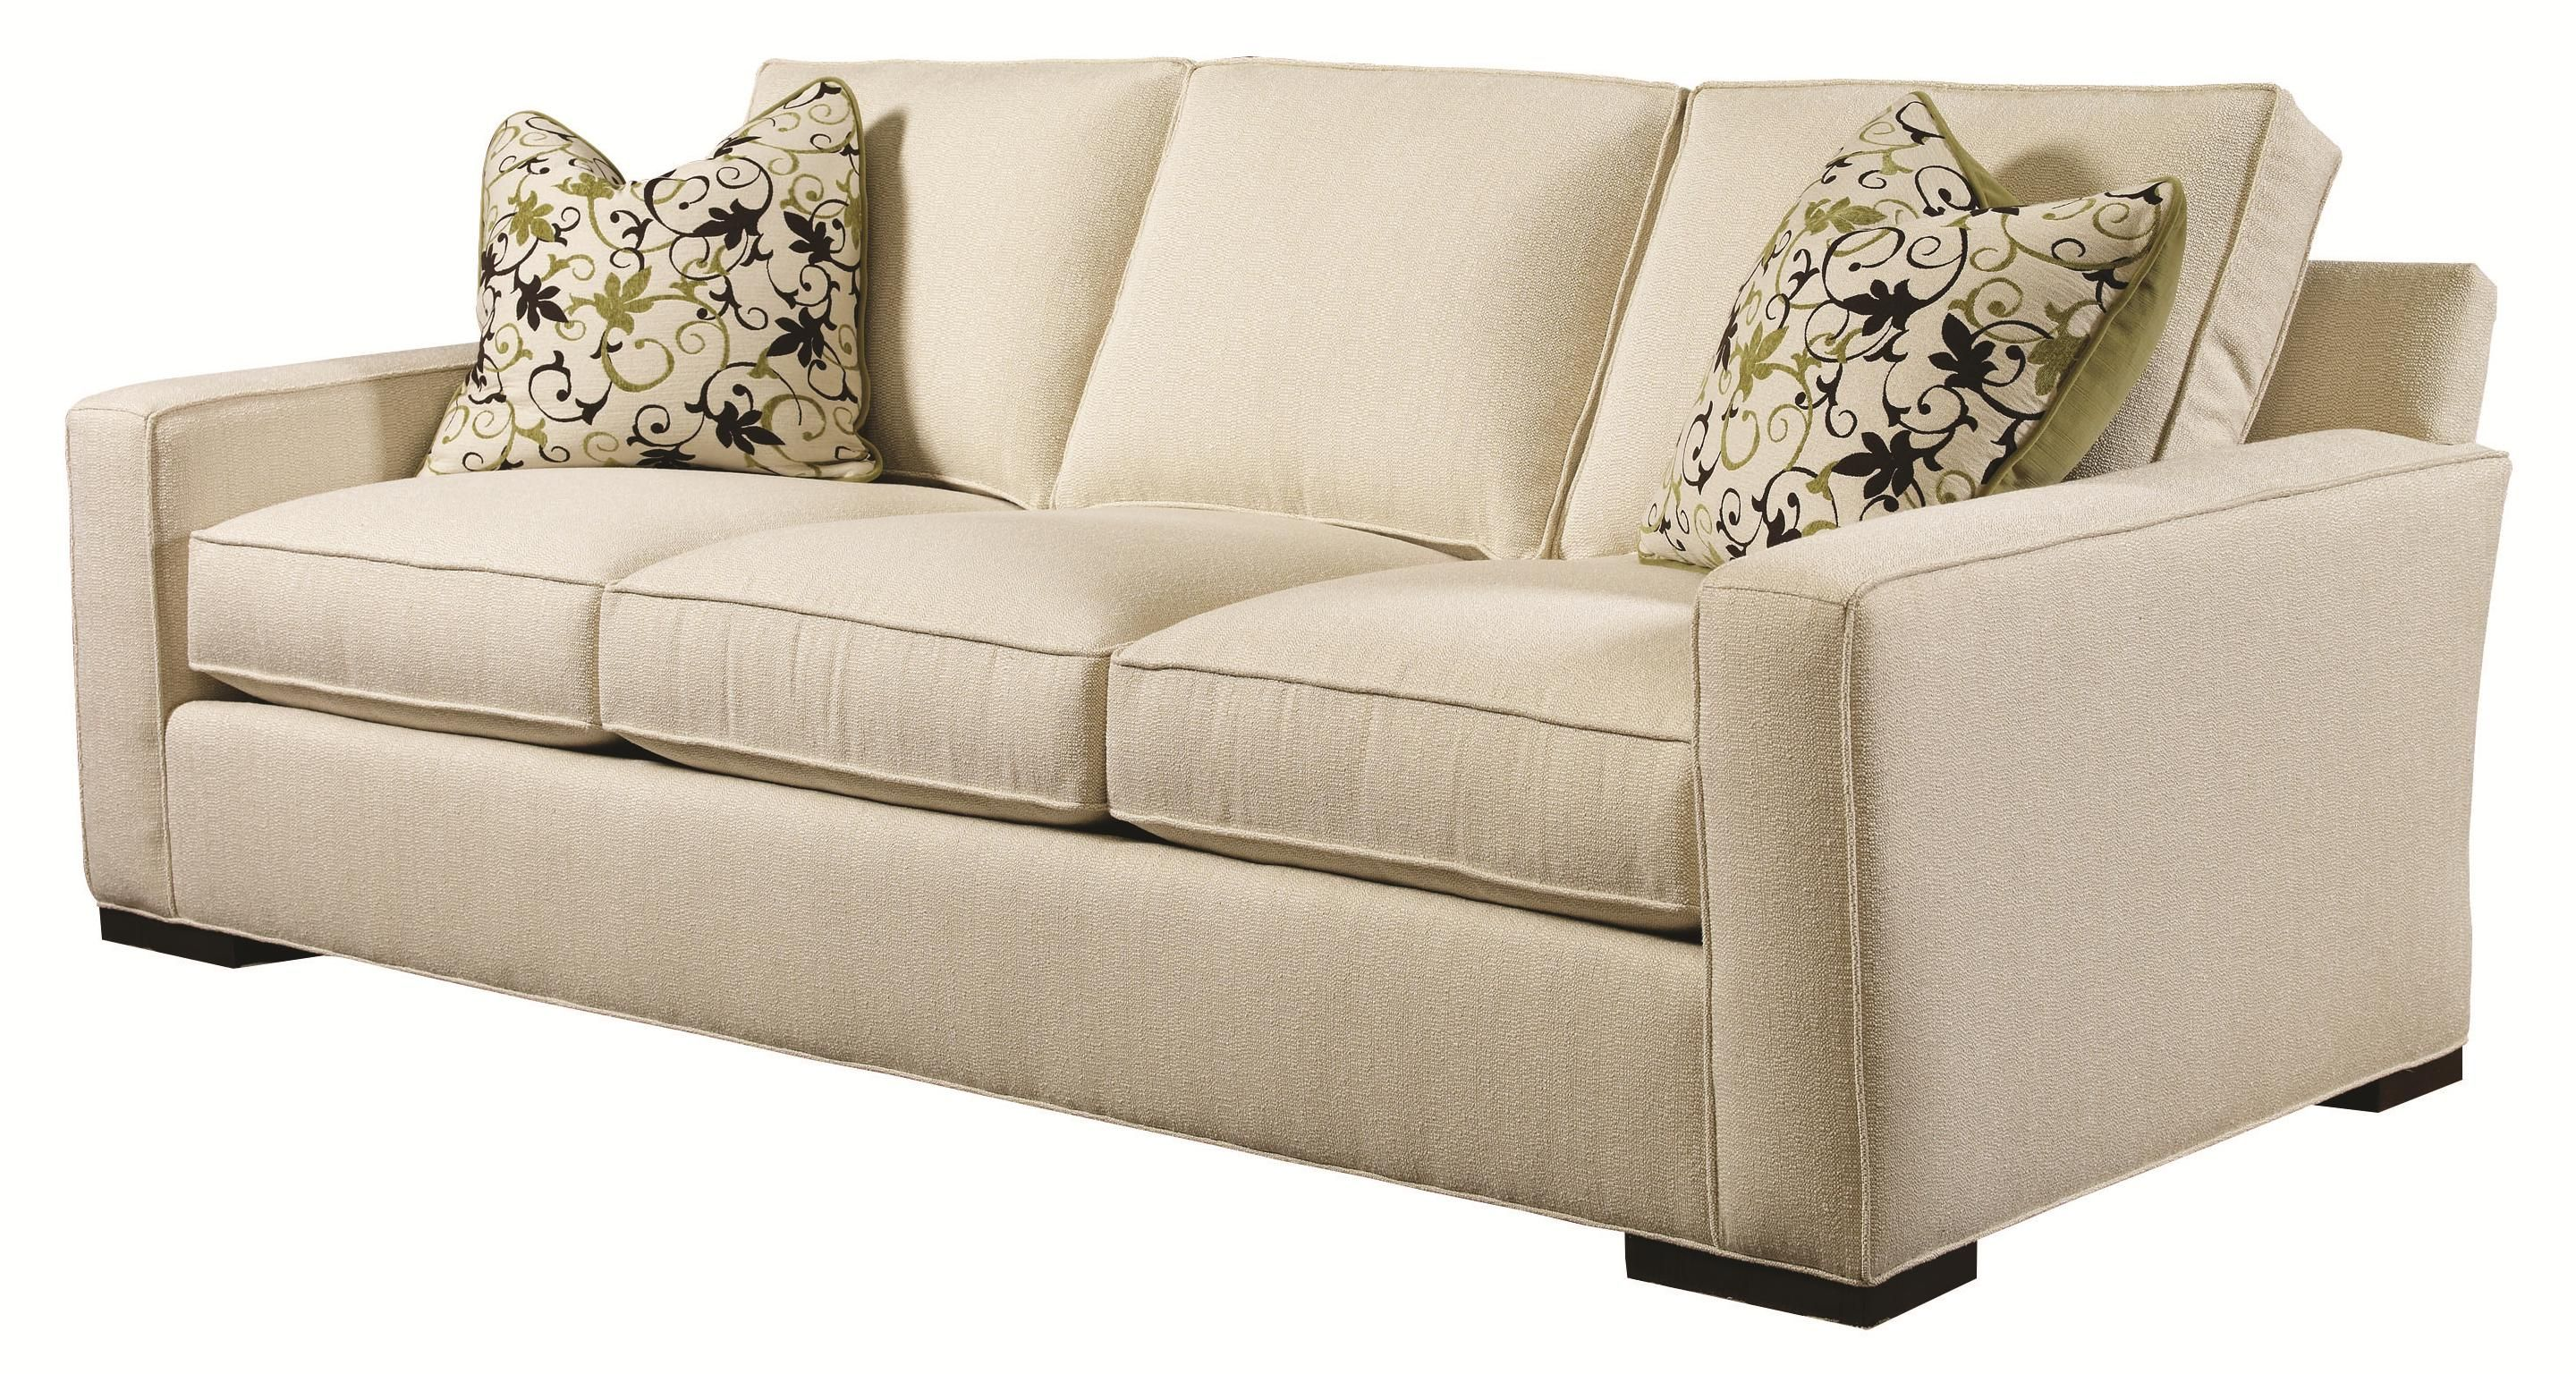 sofa beds naples florida cad block bed urban spaces bond contemporary with wood feet